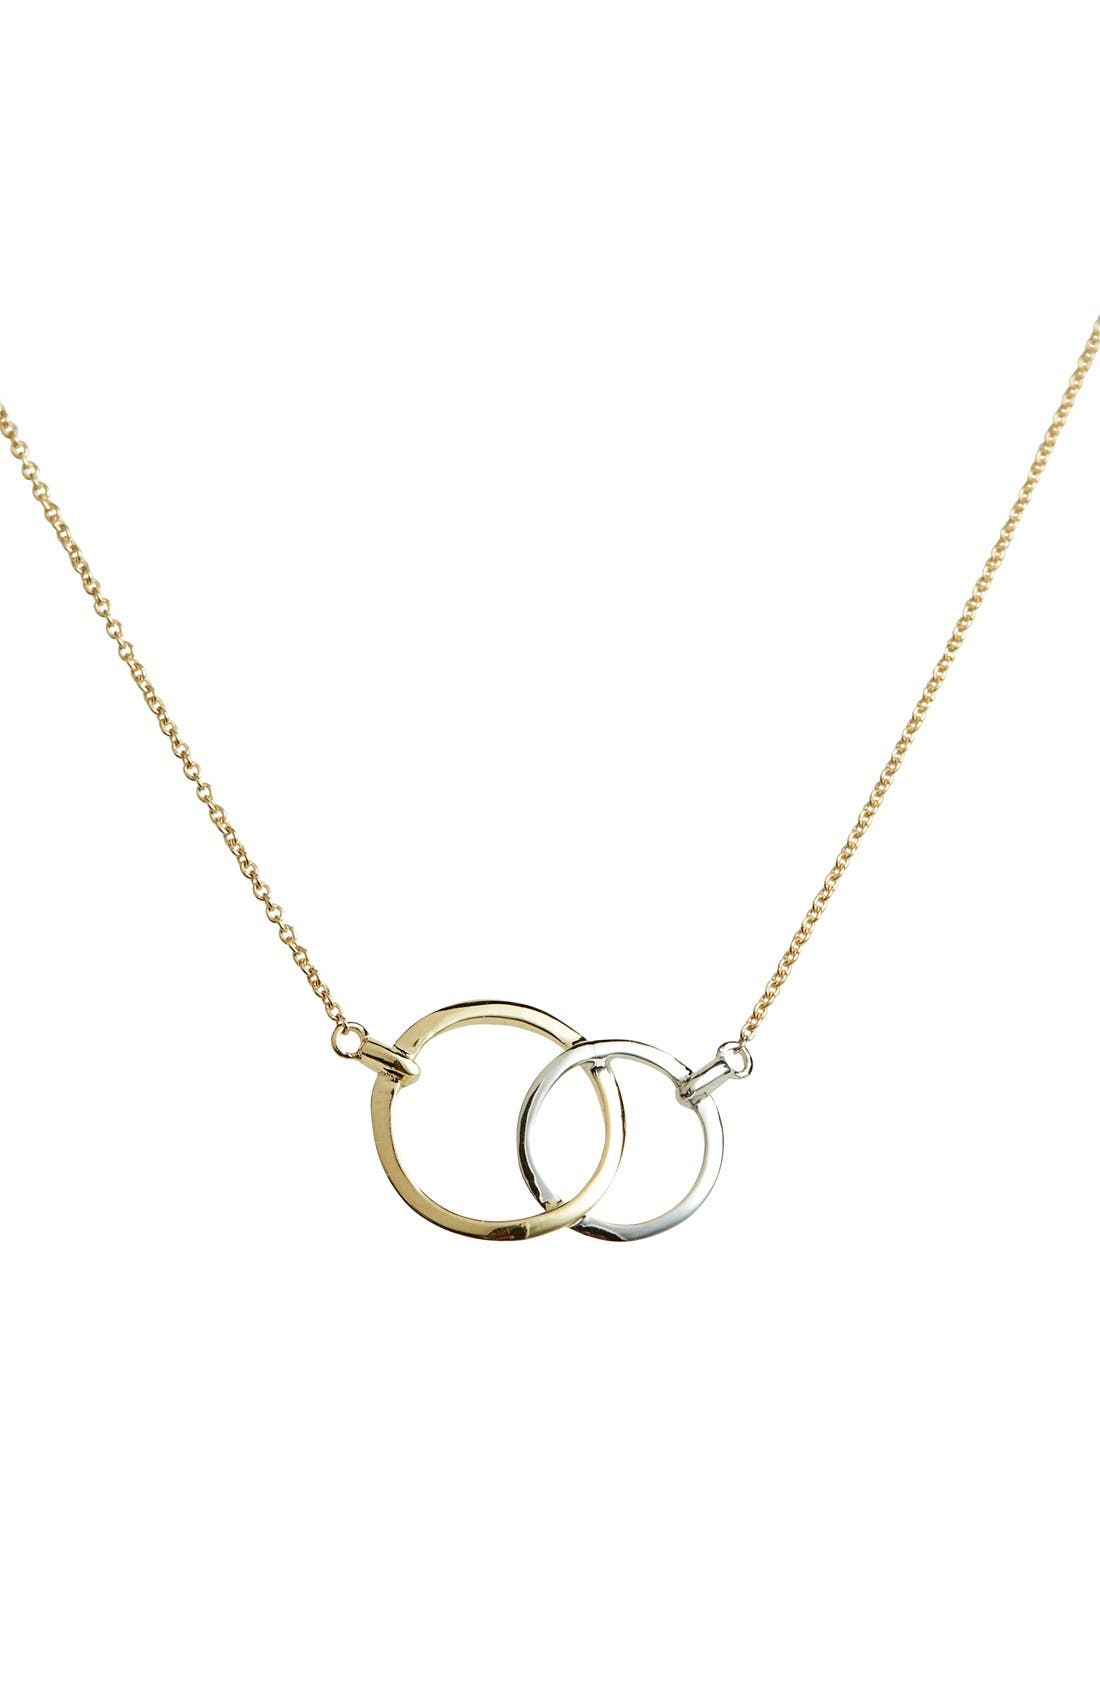 Double Circle Pendant Necklace,                         Main,                         color, Yellow Gold/ White Gold